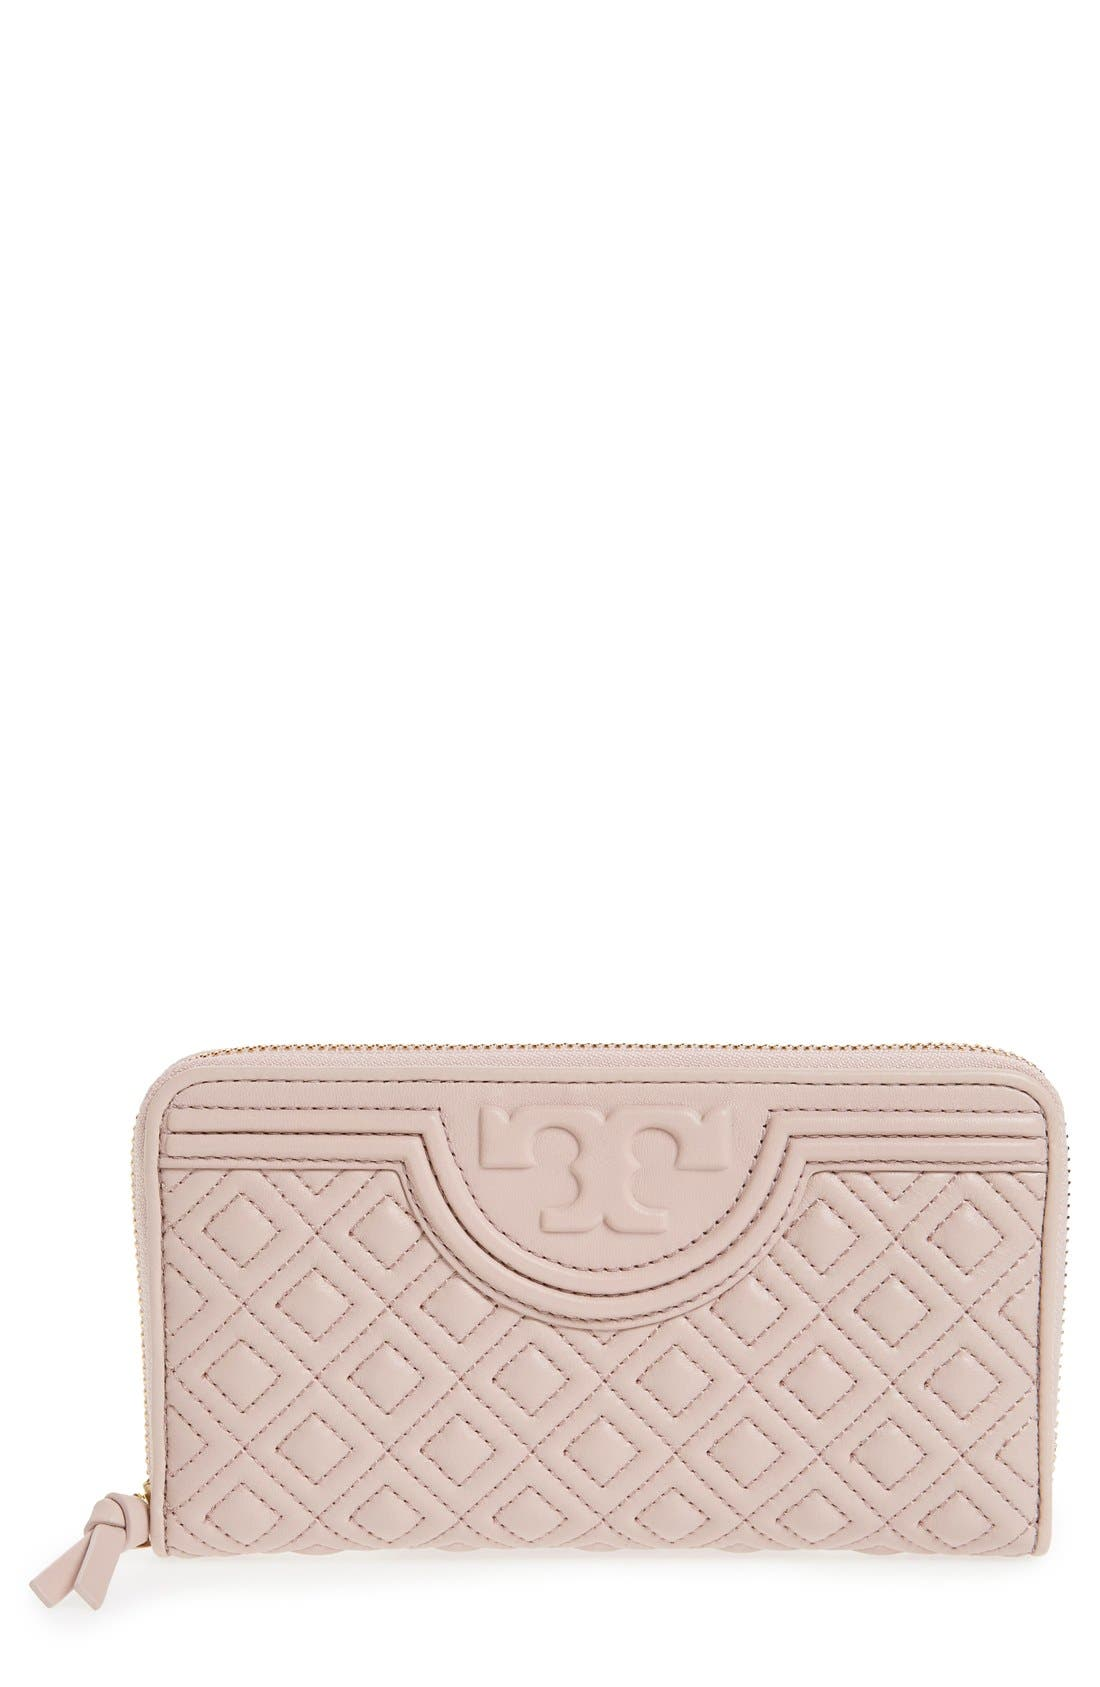 Alternate Image 1 Selected - Tory Burch 'Fleming' Quilted Lambskin Leather Continental Wallet